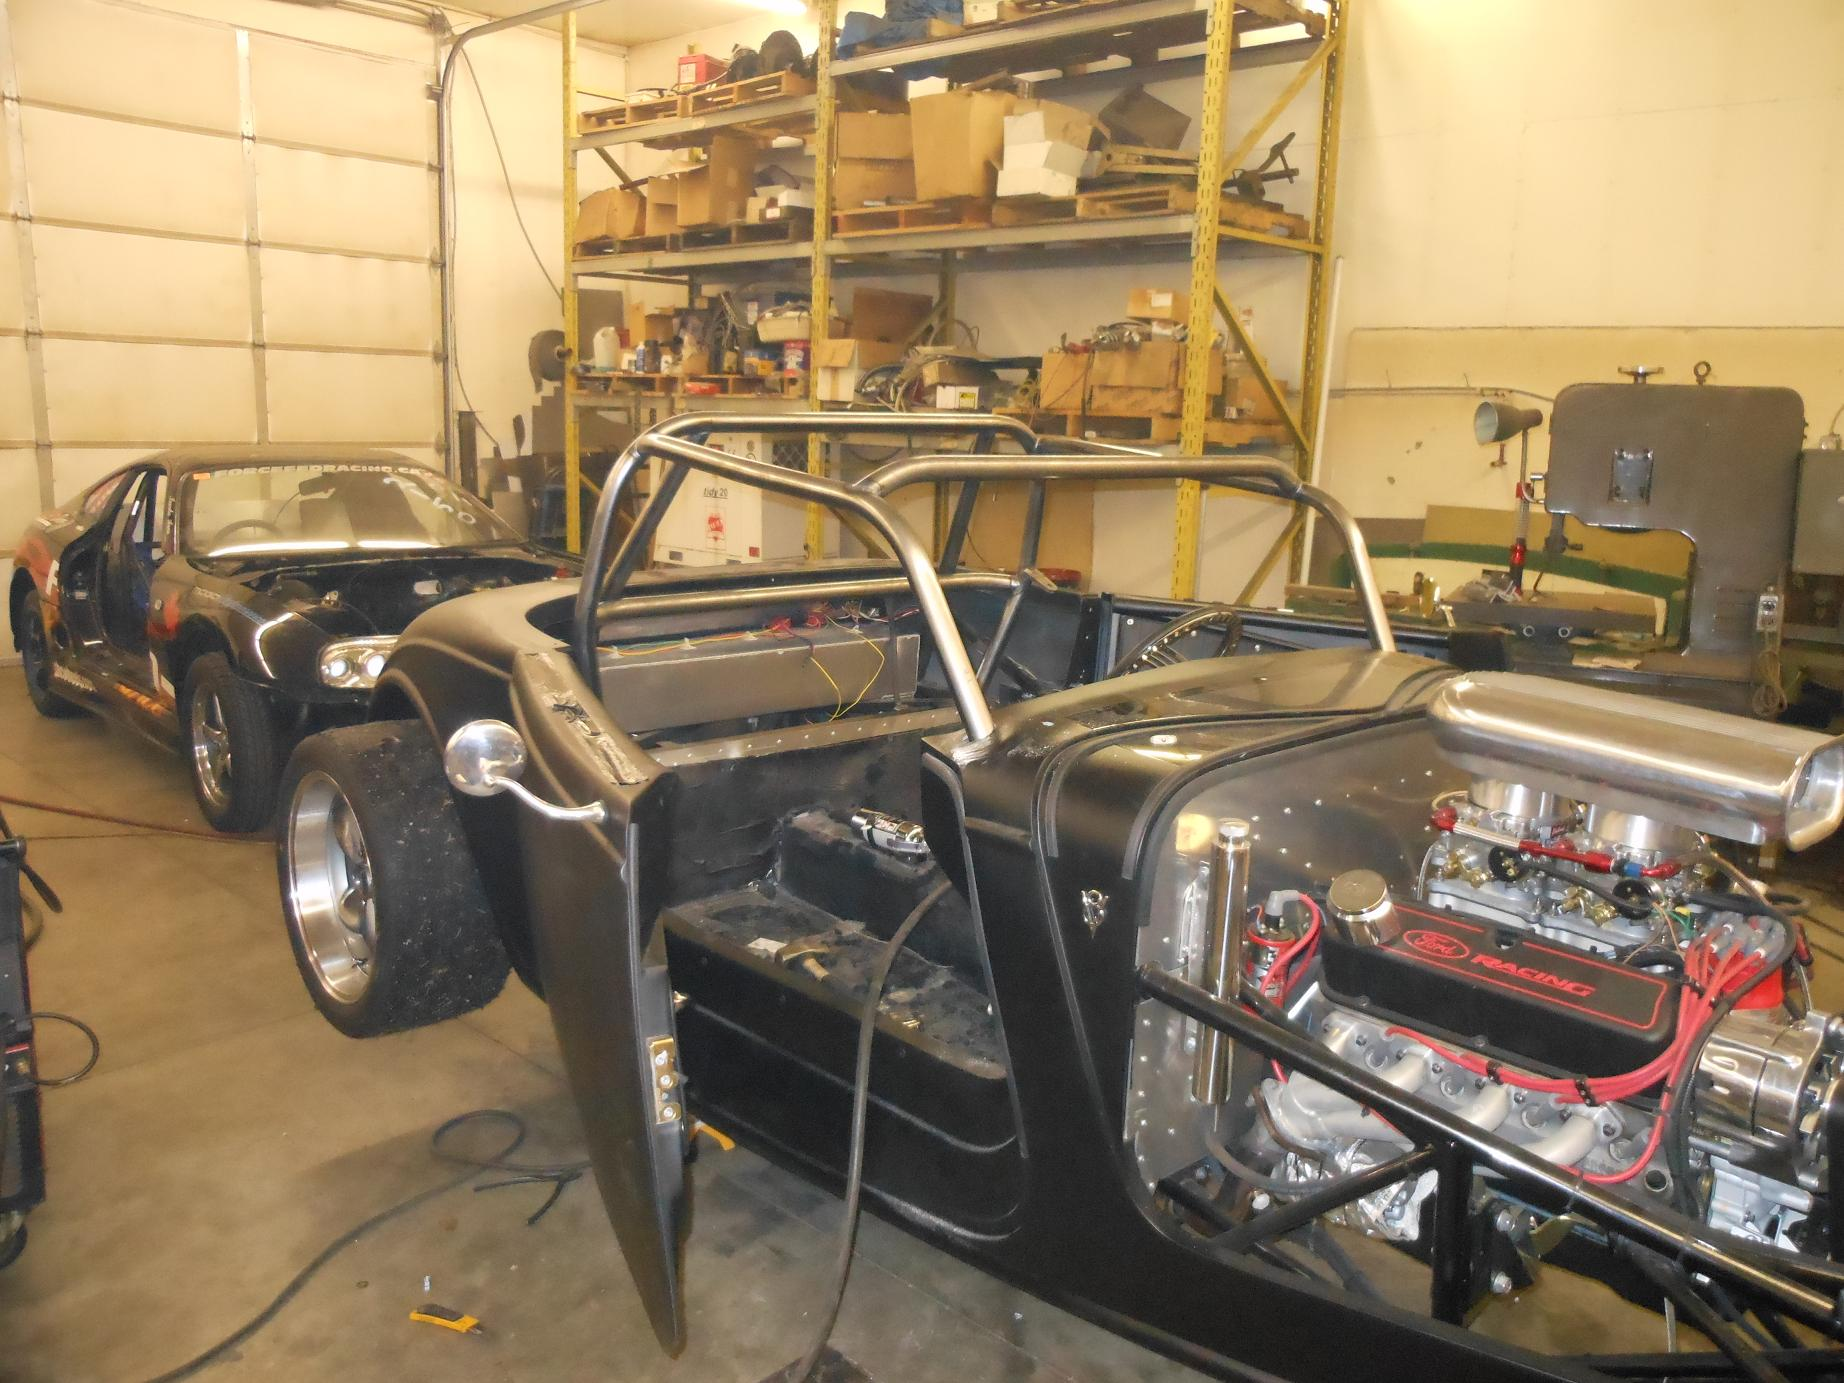 33 Factory 5 Roll Cage 171 Progas Engineering